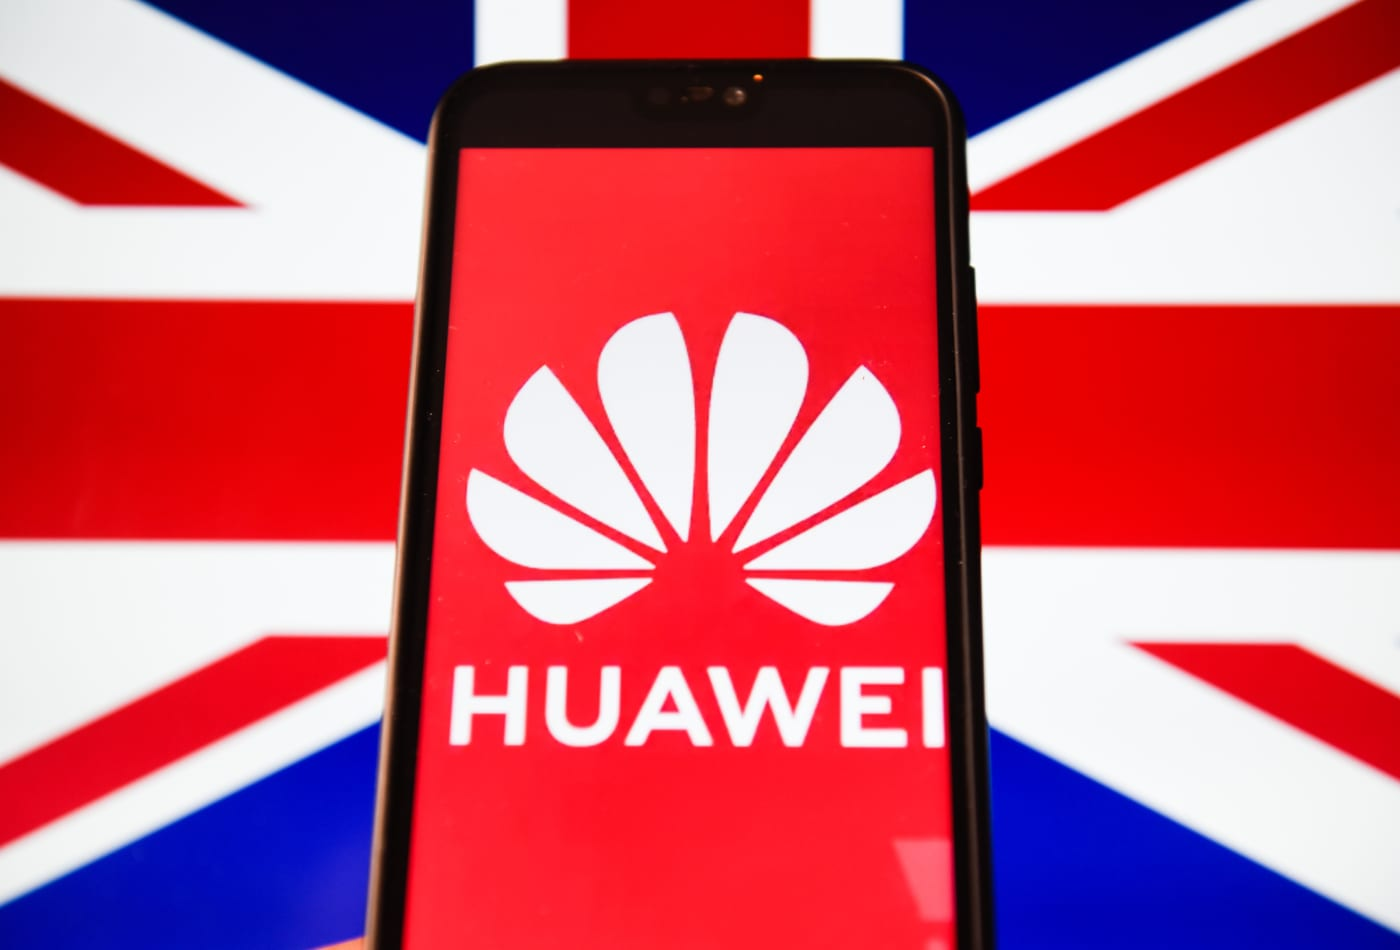 UK to phase out Huawei gear from 5G networks in a major policy U-turn after U.S. sanctions, reports say